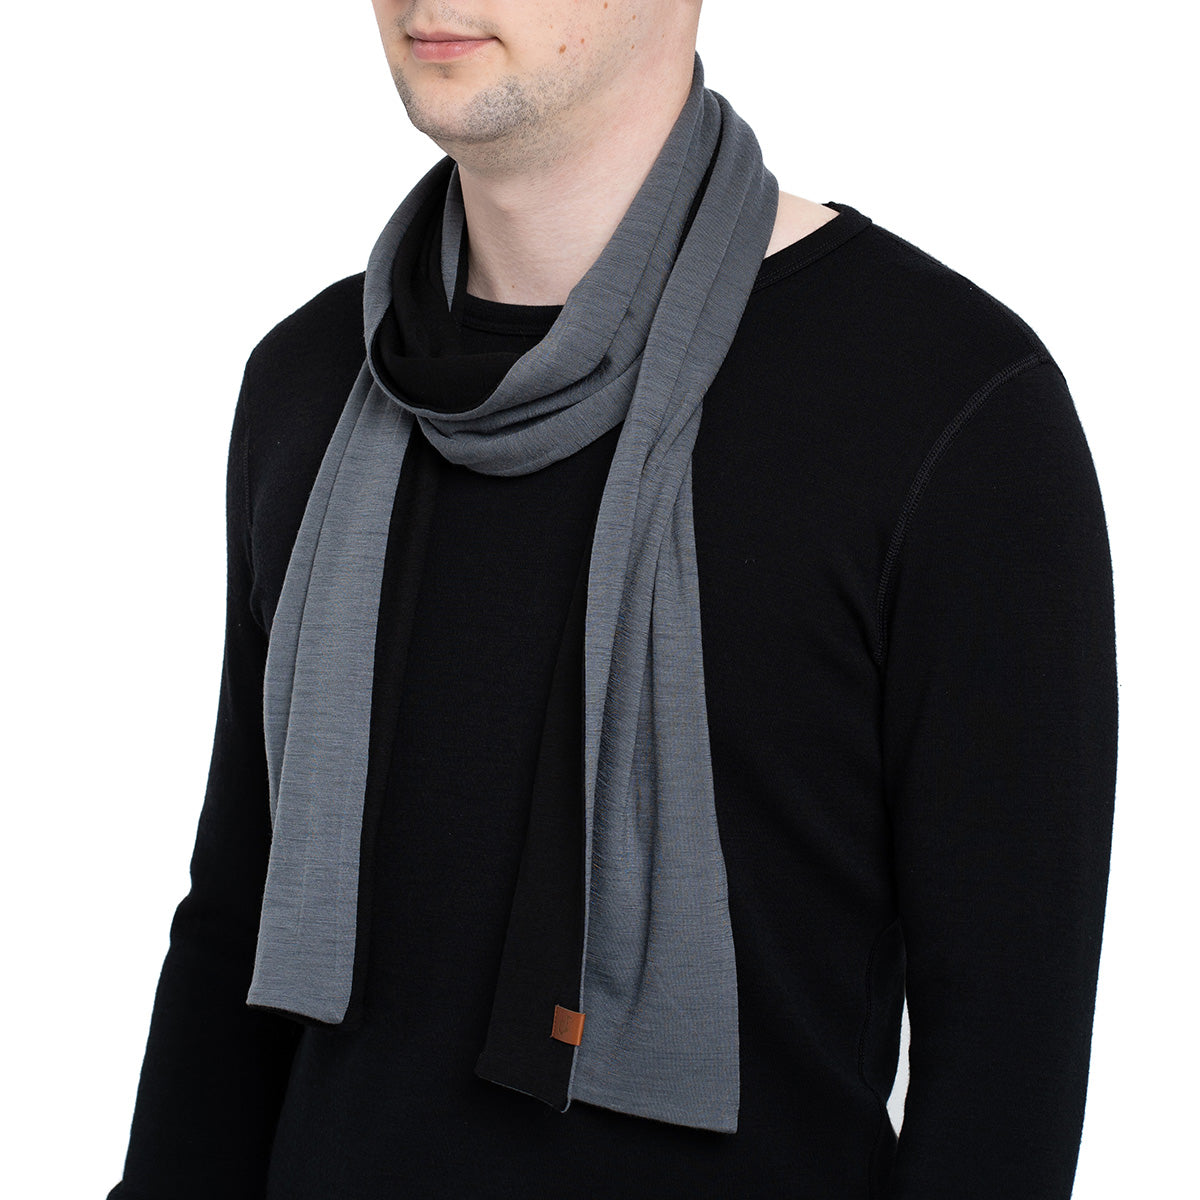 menique Men's Merino Scarf Black/Perfect Grey Color